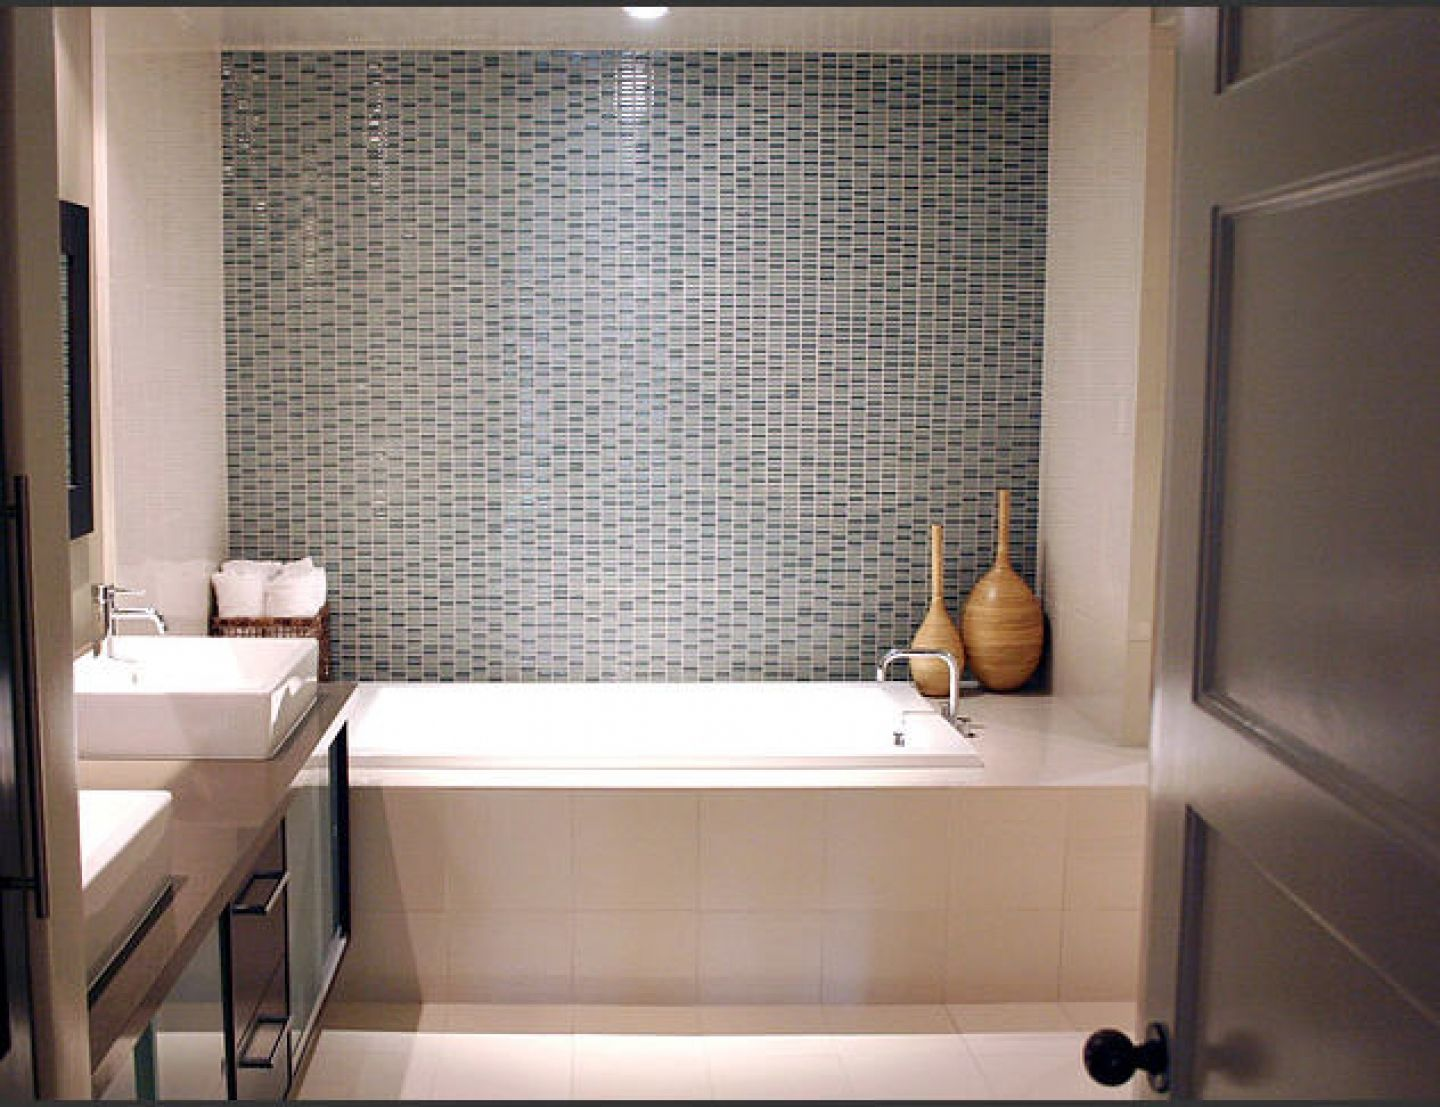 bathroom small bathroom design ideas picture - Small Bathrooms Design Ideas